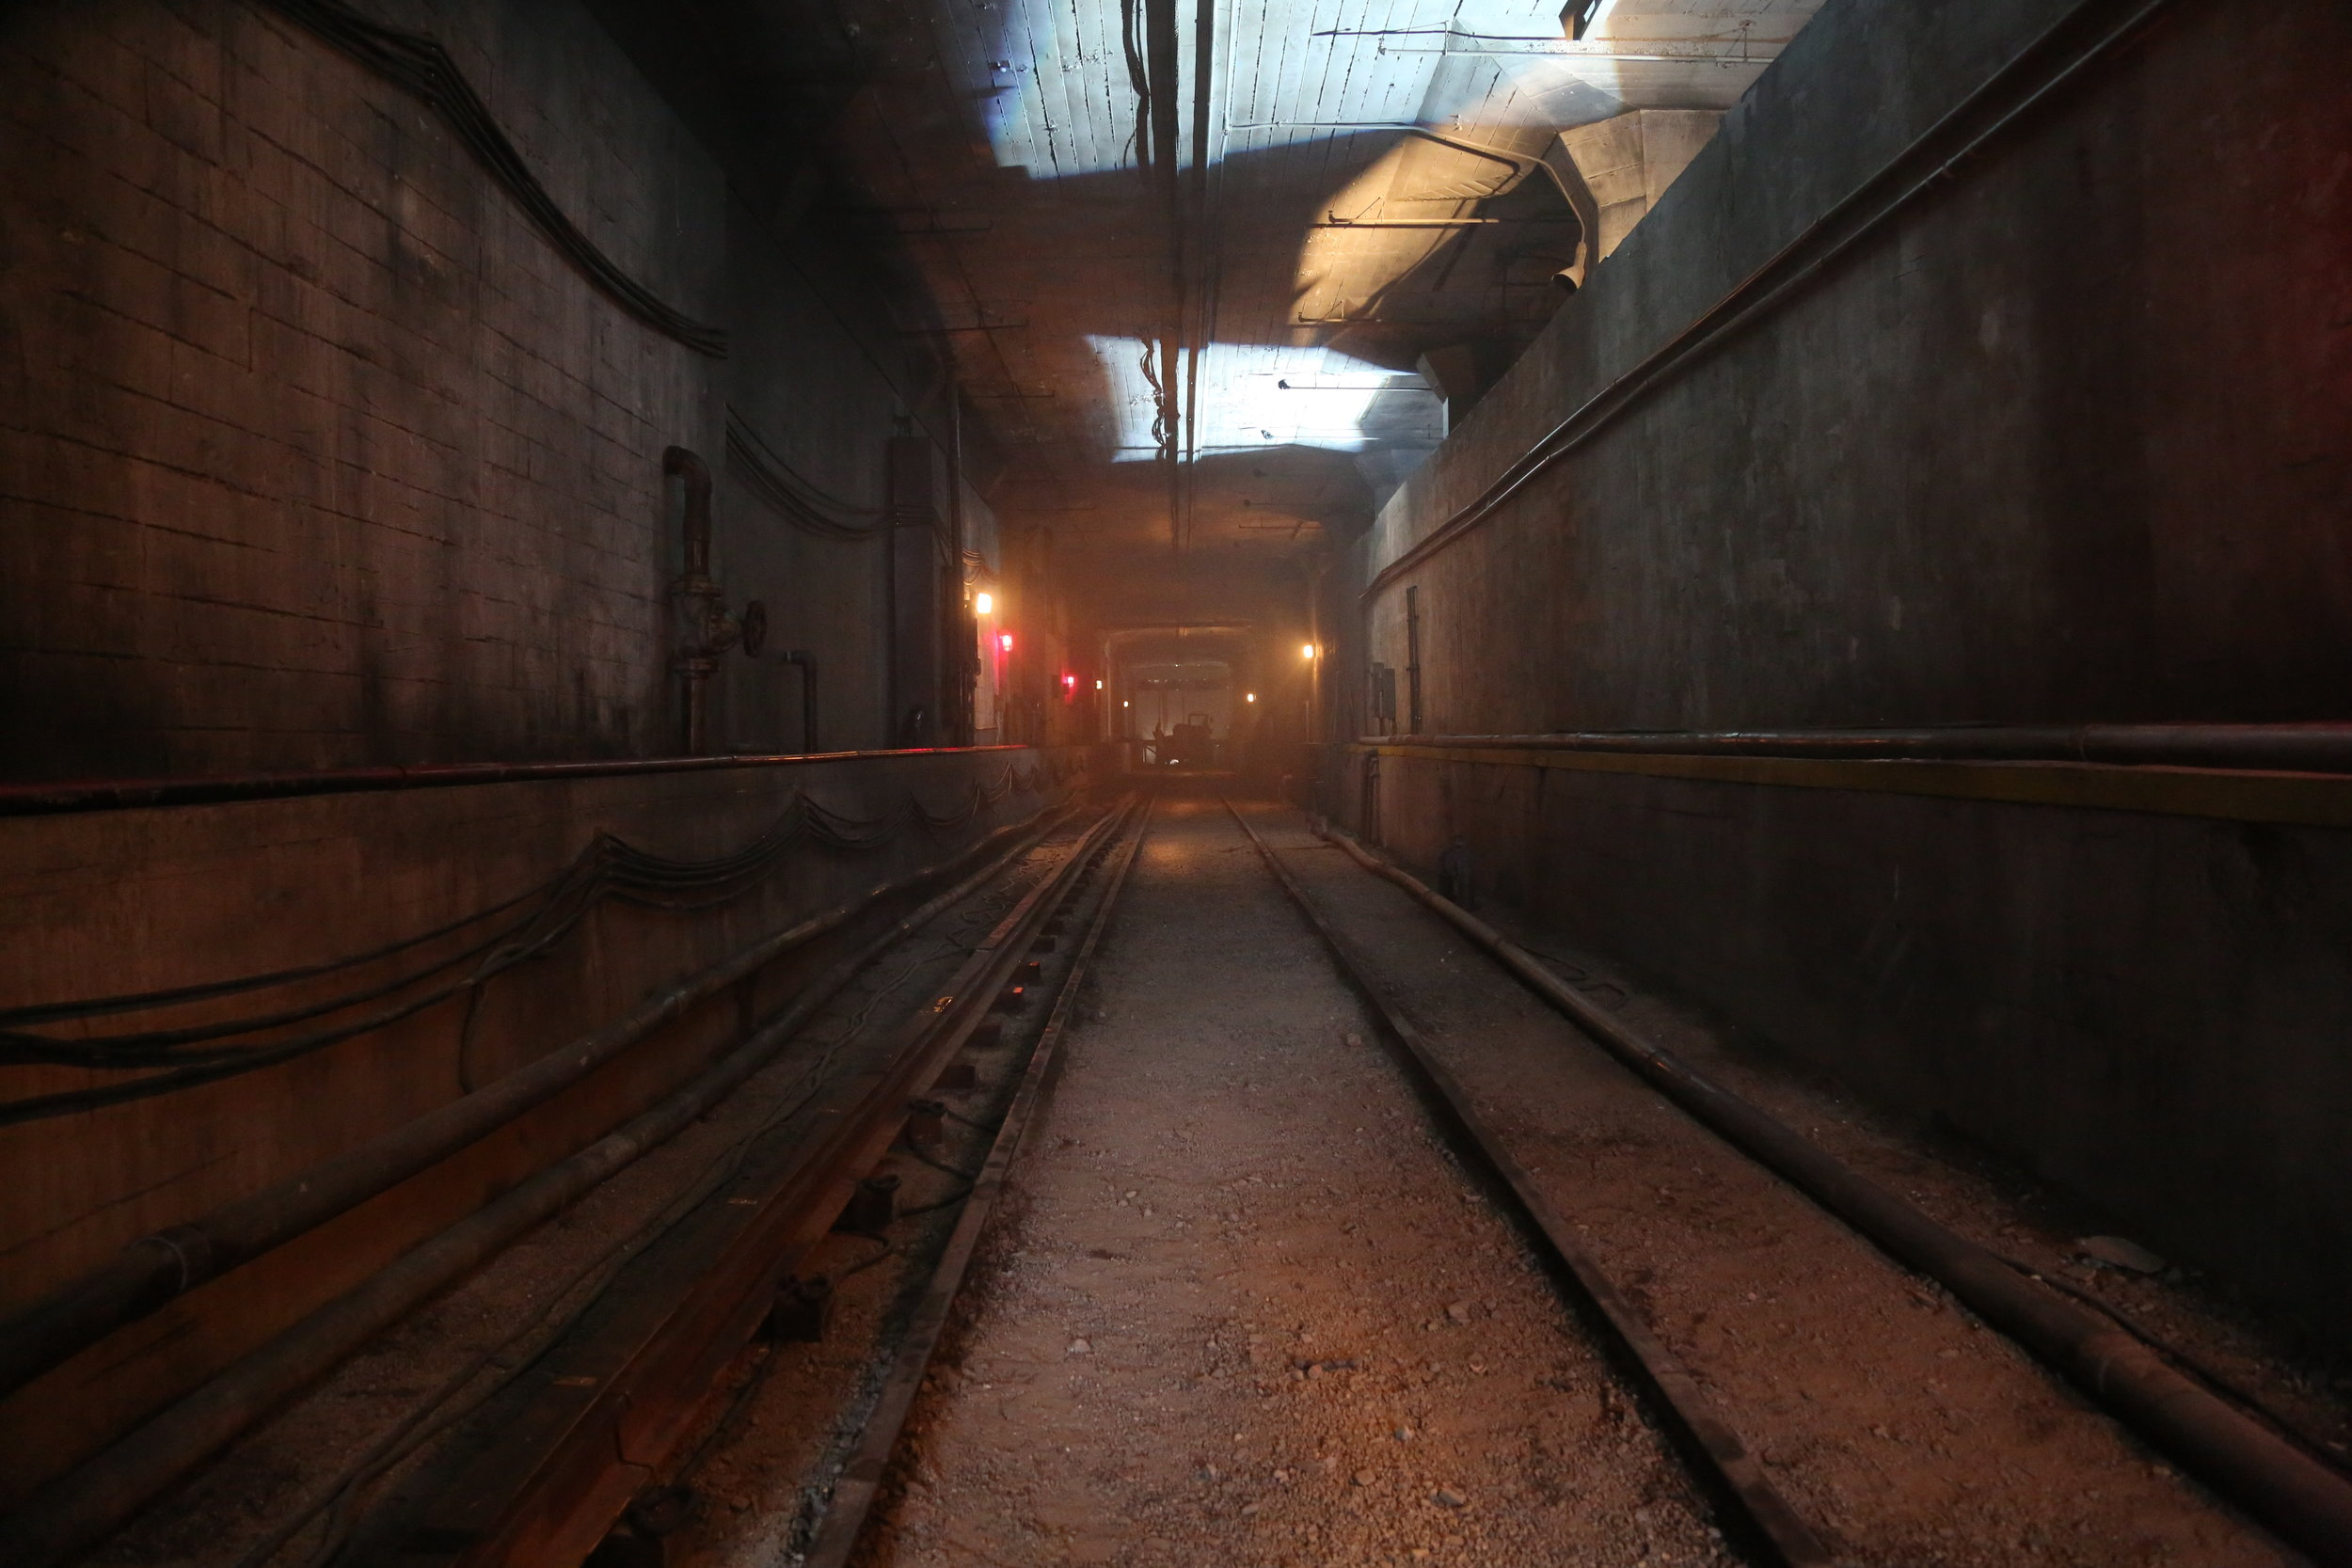 LA Subway Tunnel-  We used a warehouse location to create 300 feet of enclosed subway tunnel and towed in a subway car.